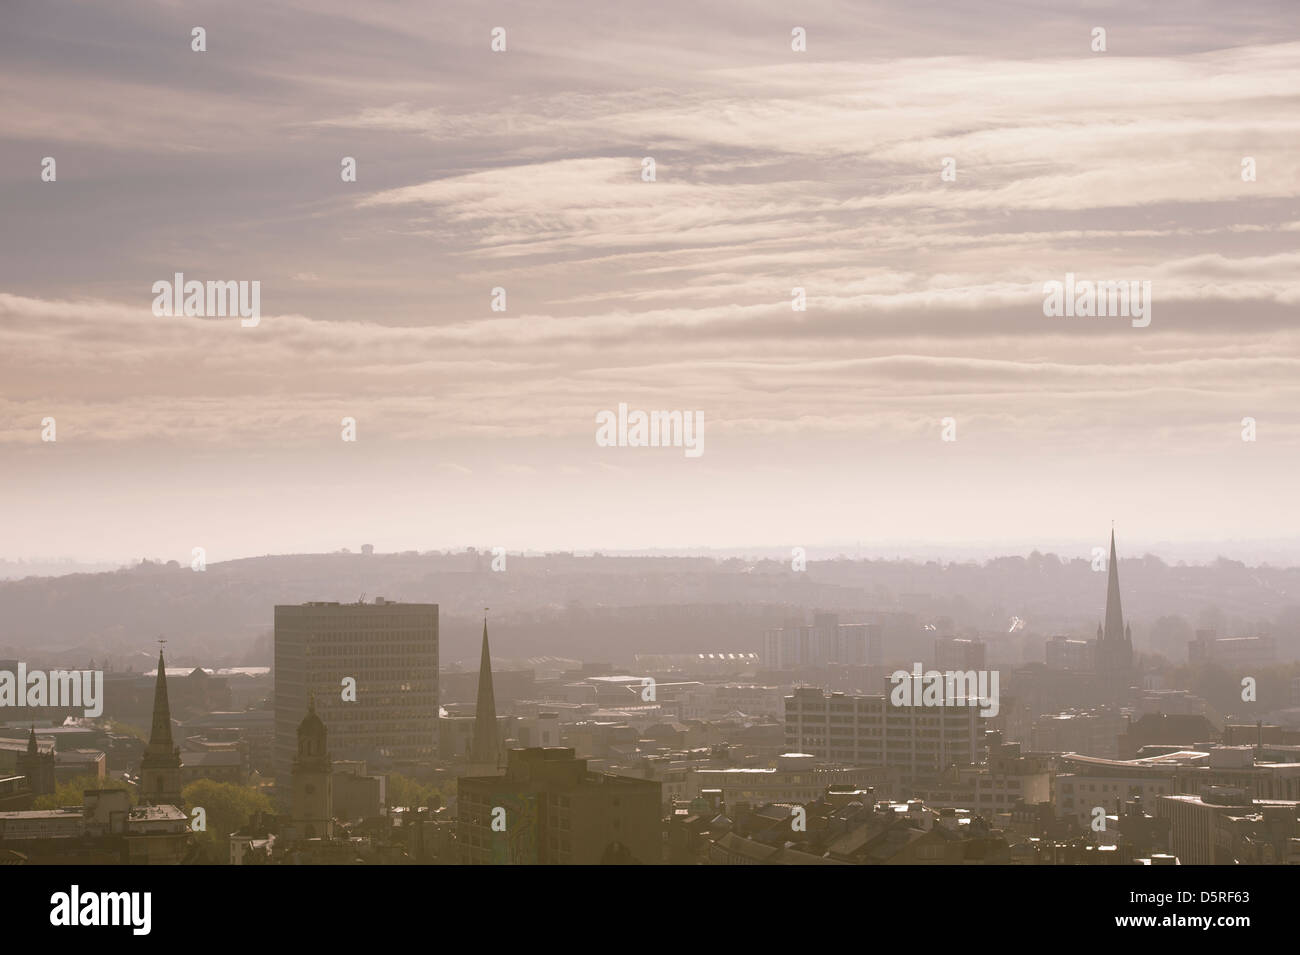 Beautiful view across the city of Bristol skyline on a misty morning, England. - Stock Image